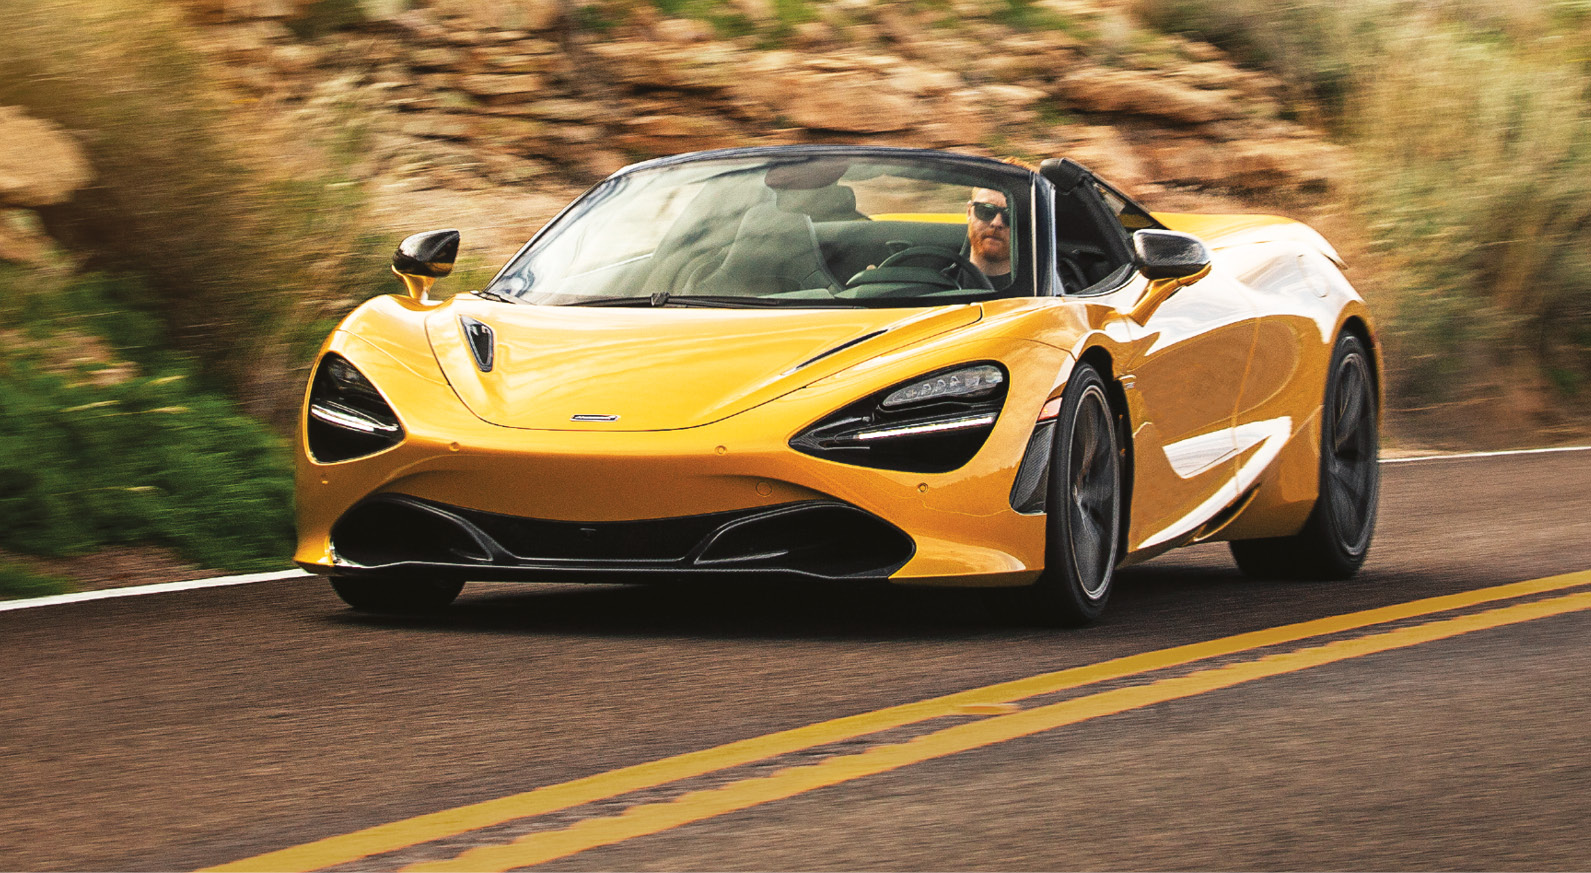 The 720S Spider lacks none of the rigidity of the hard-top sister car